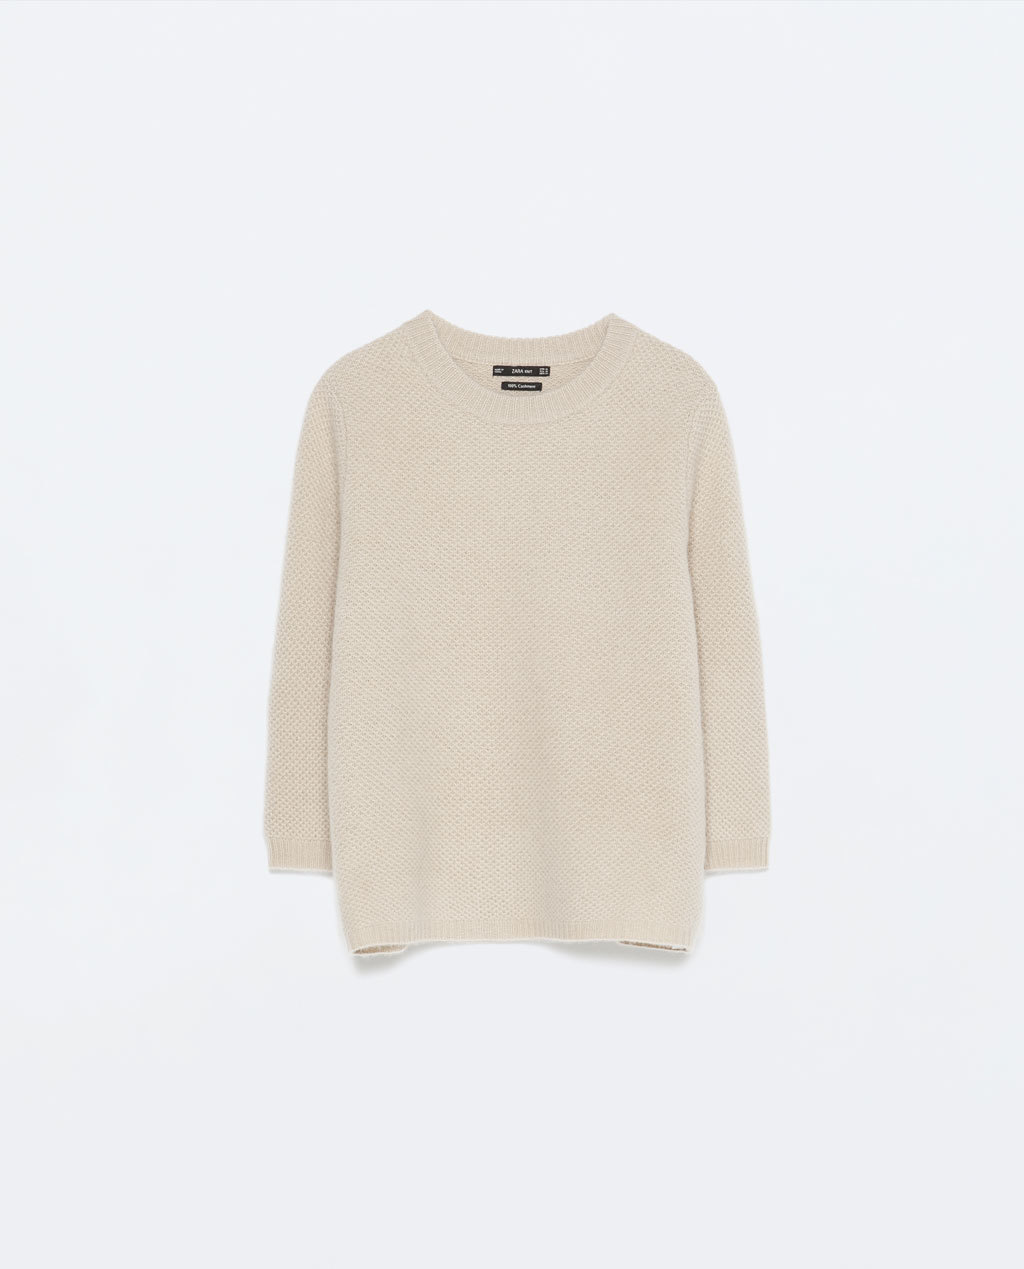 Cashmere Jumper - pattern: plain; style: standard; predominant colour: stone; occasions: casual, creative work; length: standard; fit: standard fit; neckline: crew; fibres: cashmere - 100%; sleeve length: long sleeve; sleeve style: standard; texture group: knits/crochet; pattern type: knitted - other; season: s/s 2015